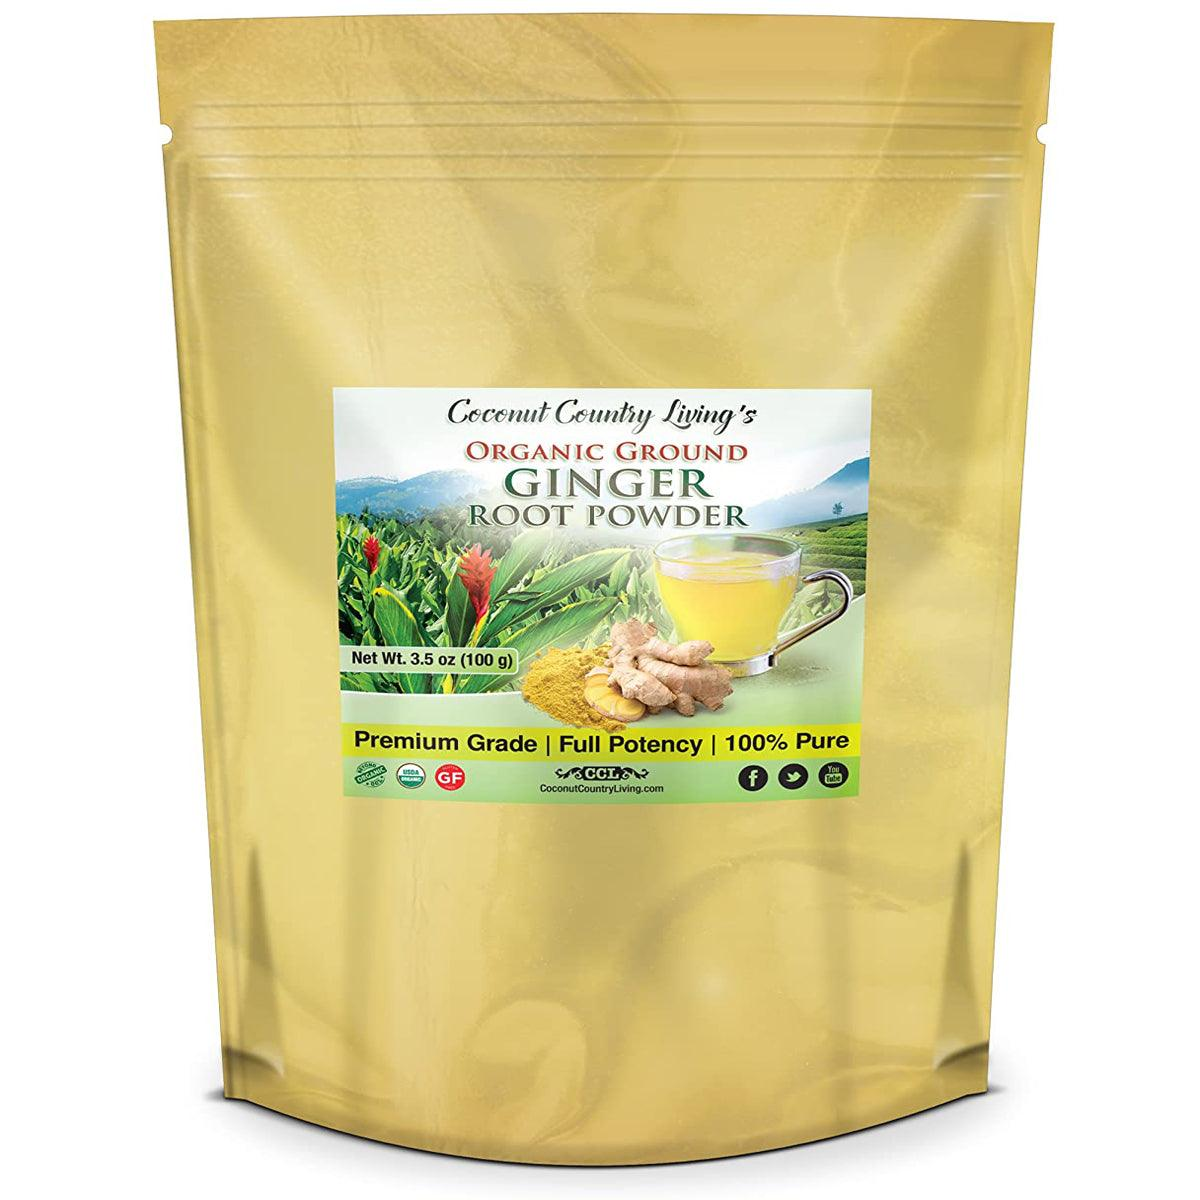 CCL Organic Ginger Root Powder - Raw Spice for Health, Beauty, Cooking - Free E-Book - USDA - USPS Shipping